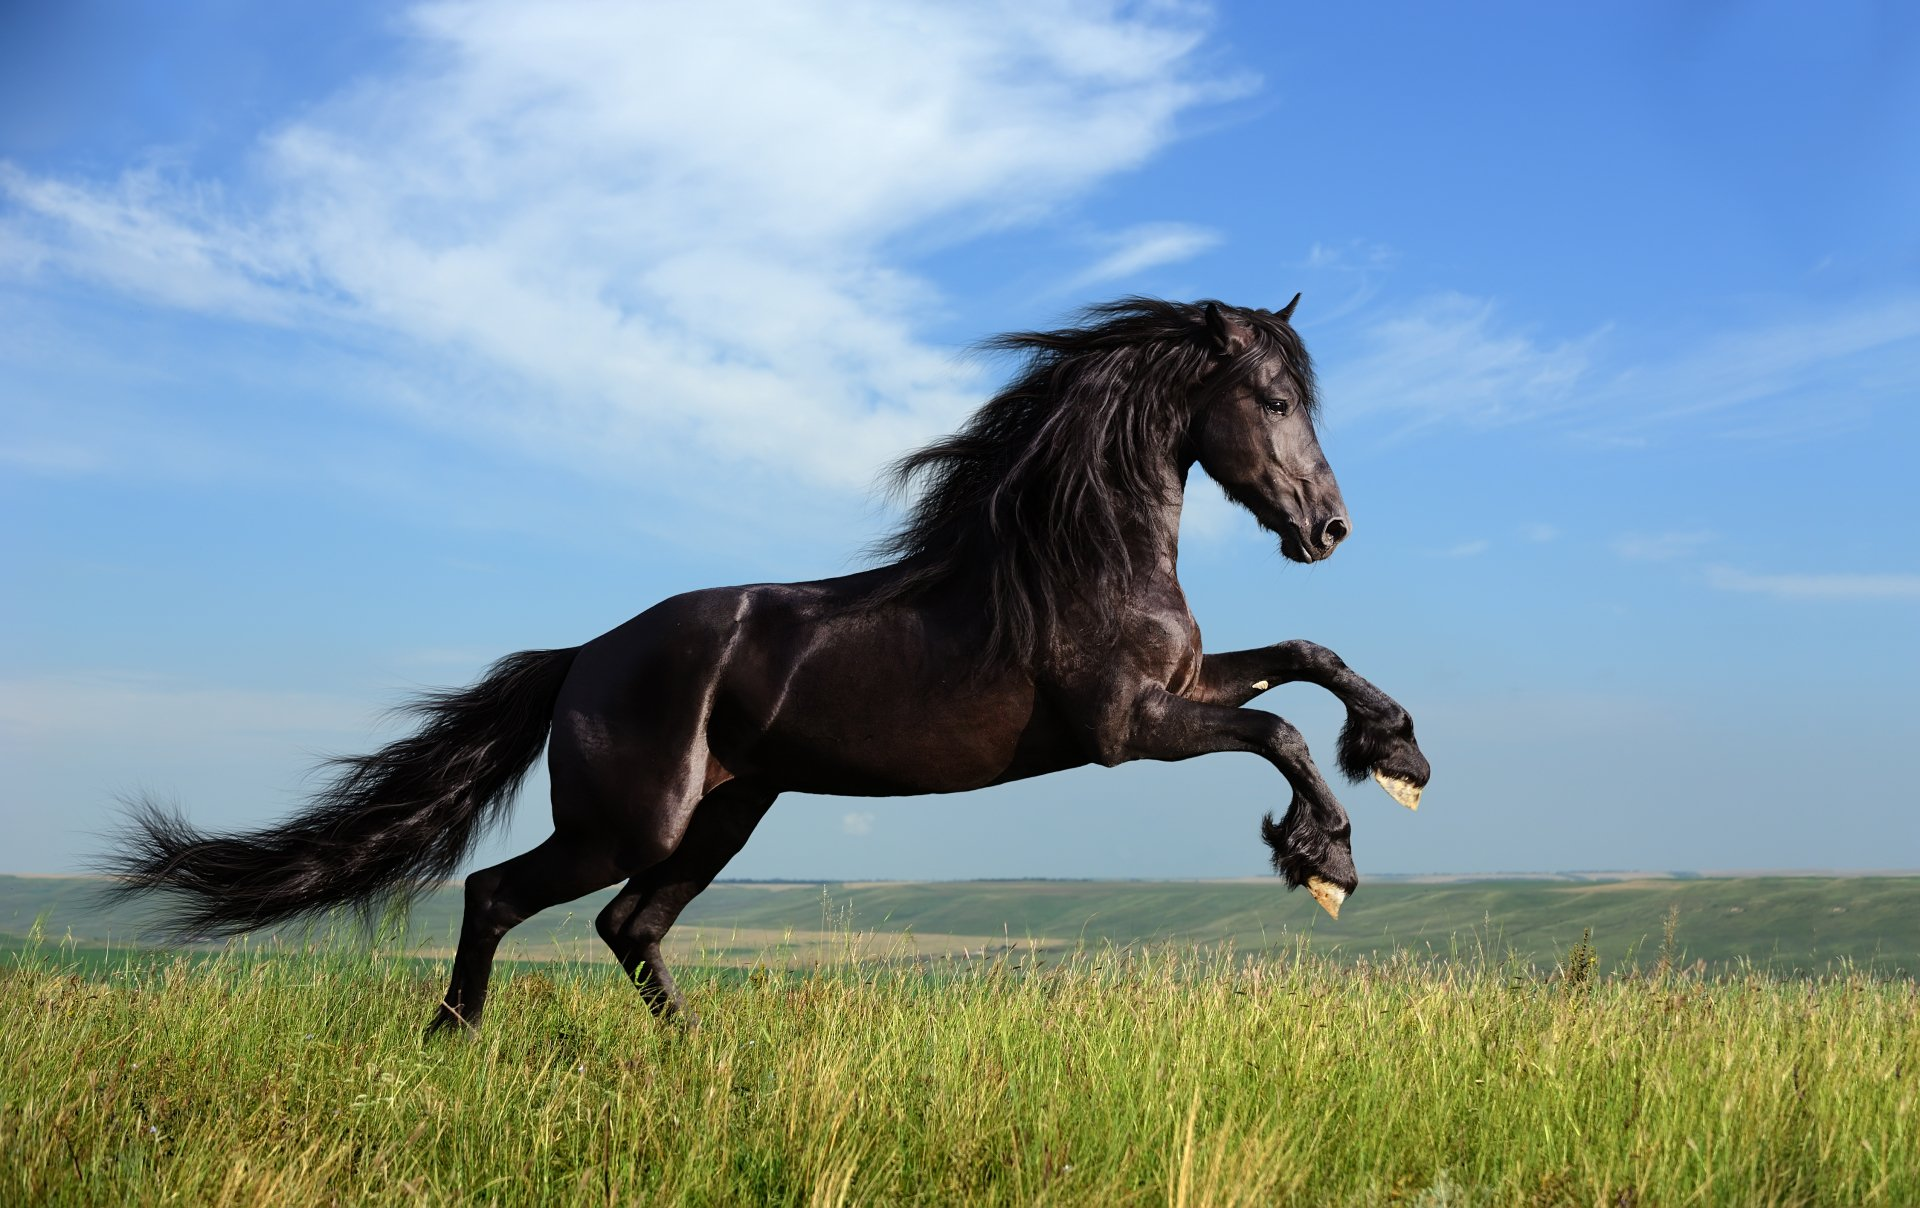 242 4k Ultra Hd Horse Wallpapers Background Images Wallpaper Abyss